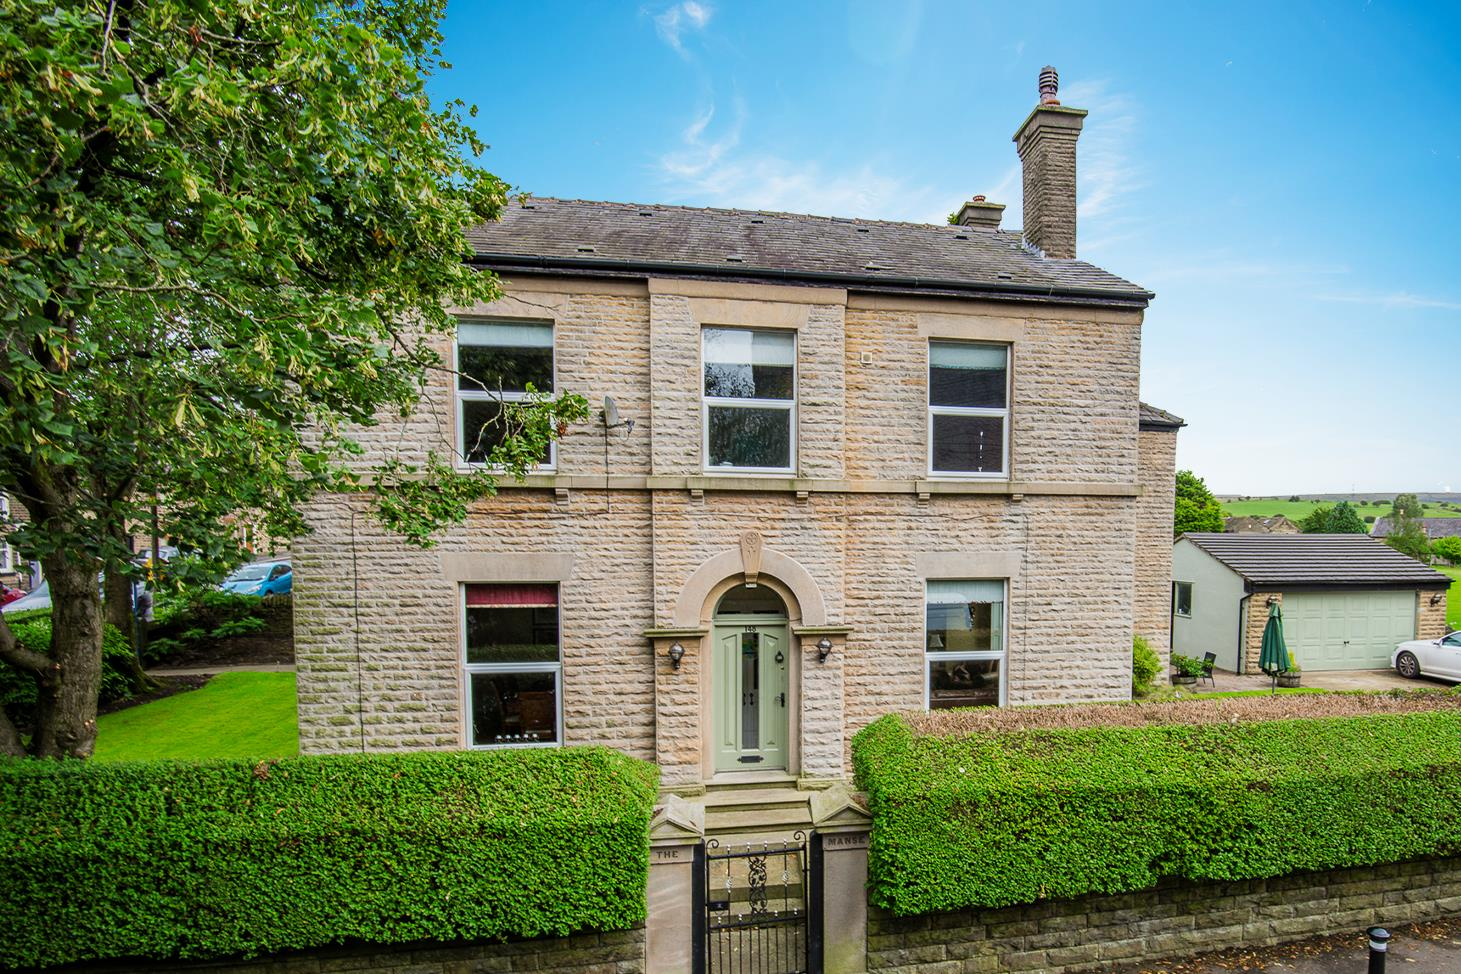 4 bedroom detached house For Sale in Bolton - DSC_1194 S.png.